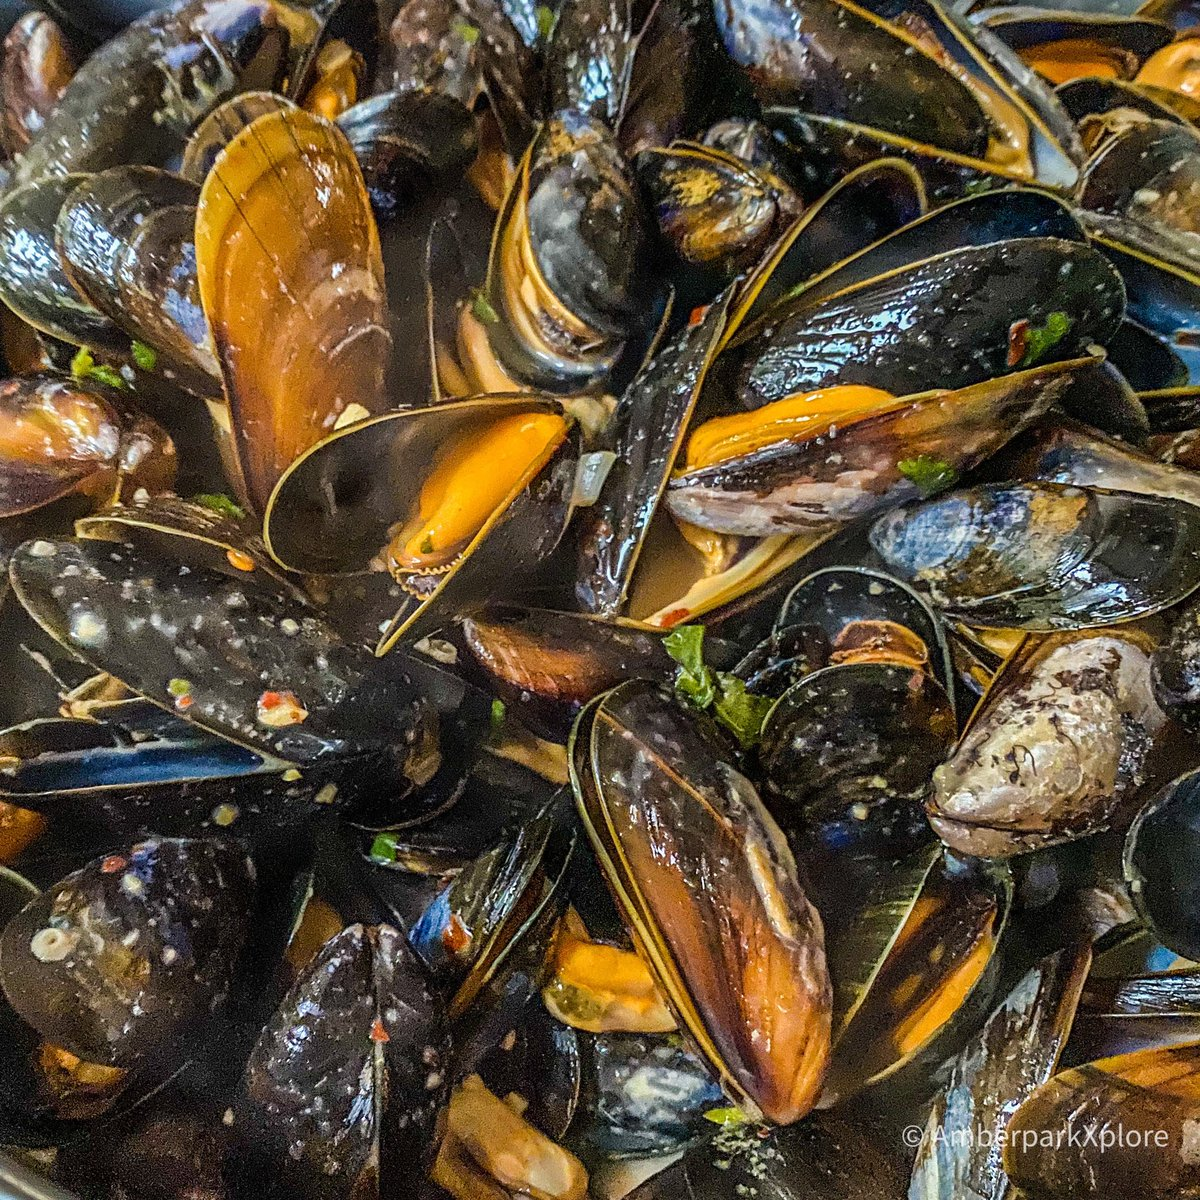 Home cooked #thai #coconut #arisaig #mussels Mussels from Andy Race Fish Merchants, Mallaig  #seafood @SeafoodFromScot @ScottishSeafood 2 1/2 kilos gone in 15mins! 😉mallaig #scotlandhour https://t.co/OGZAlp42rI